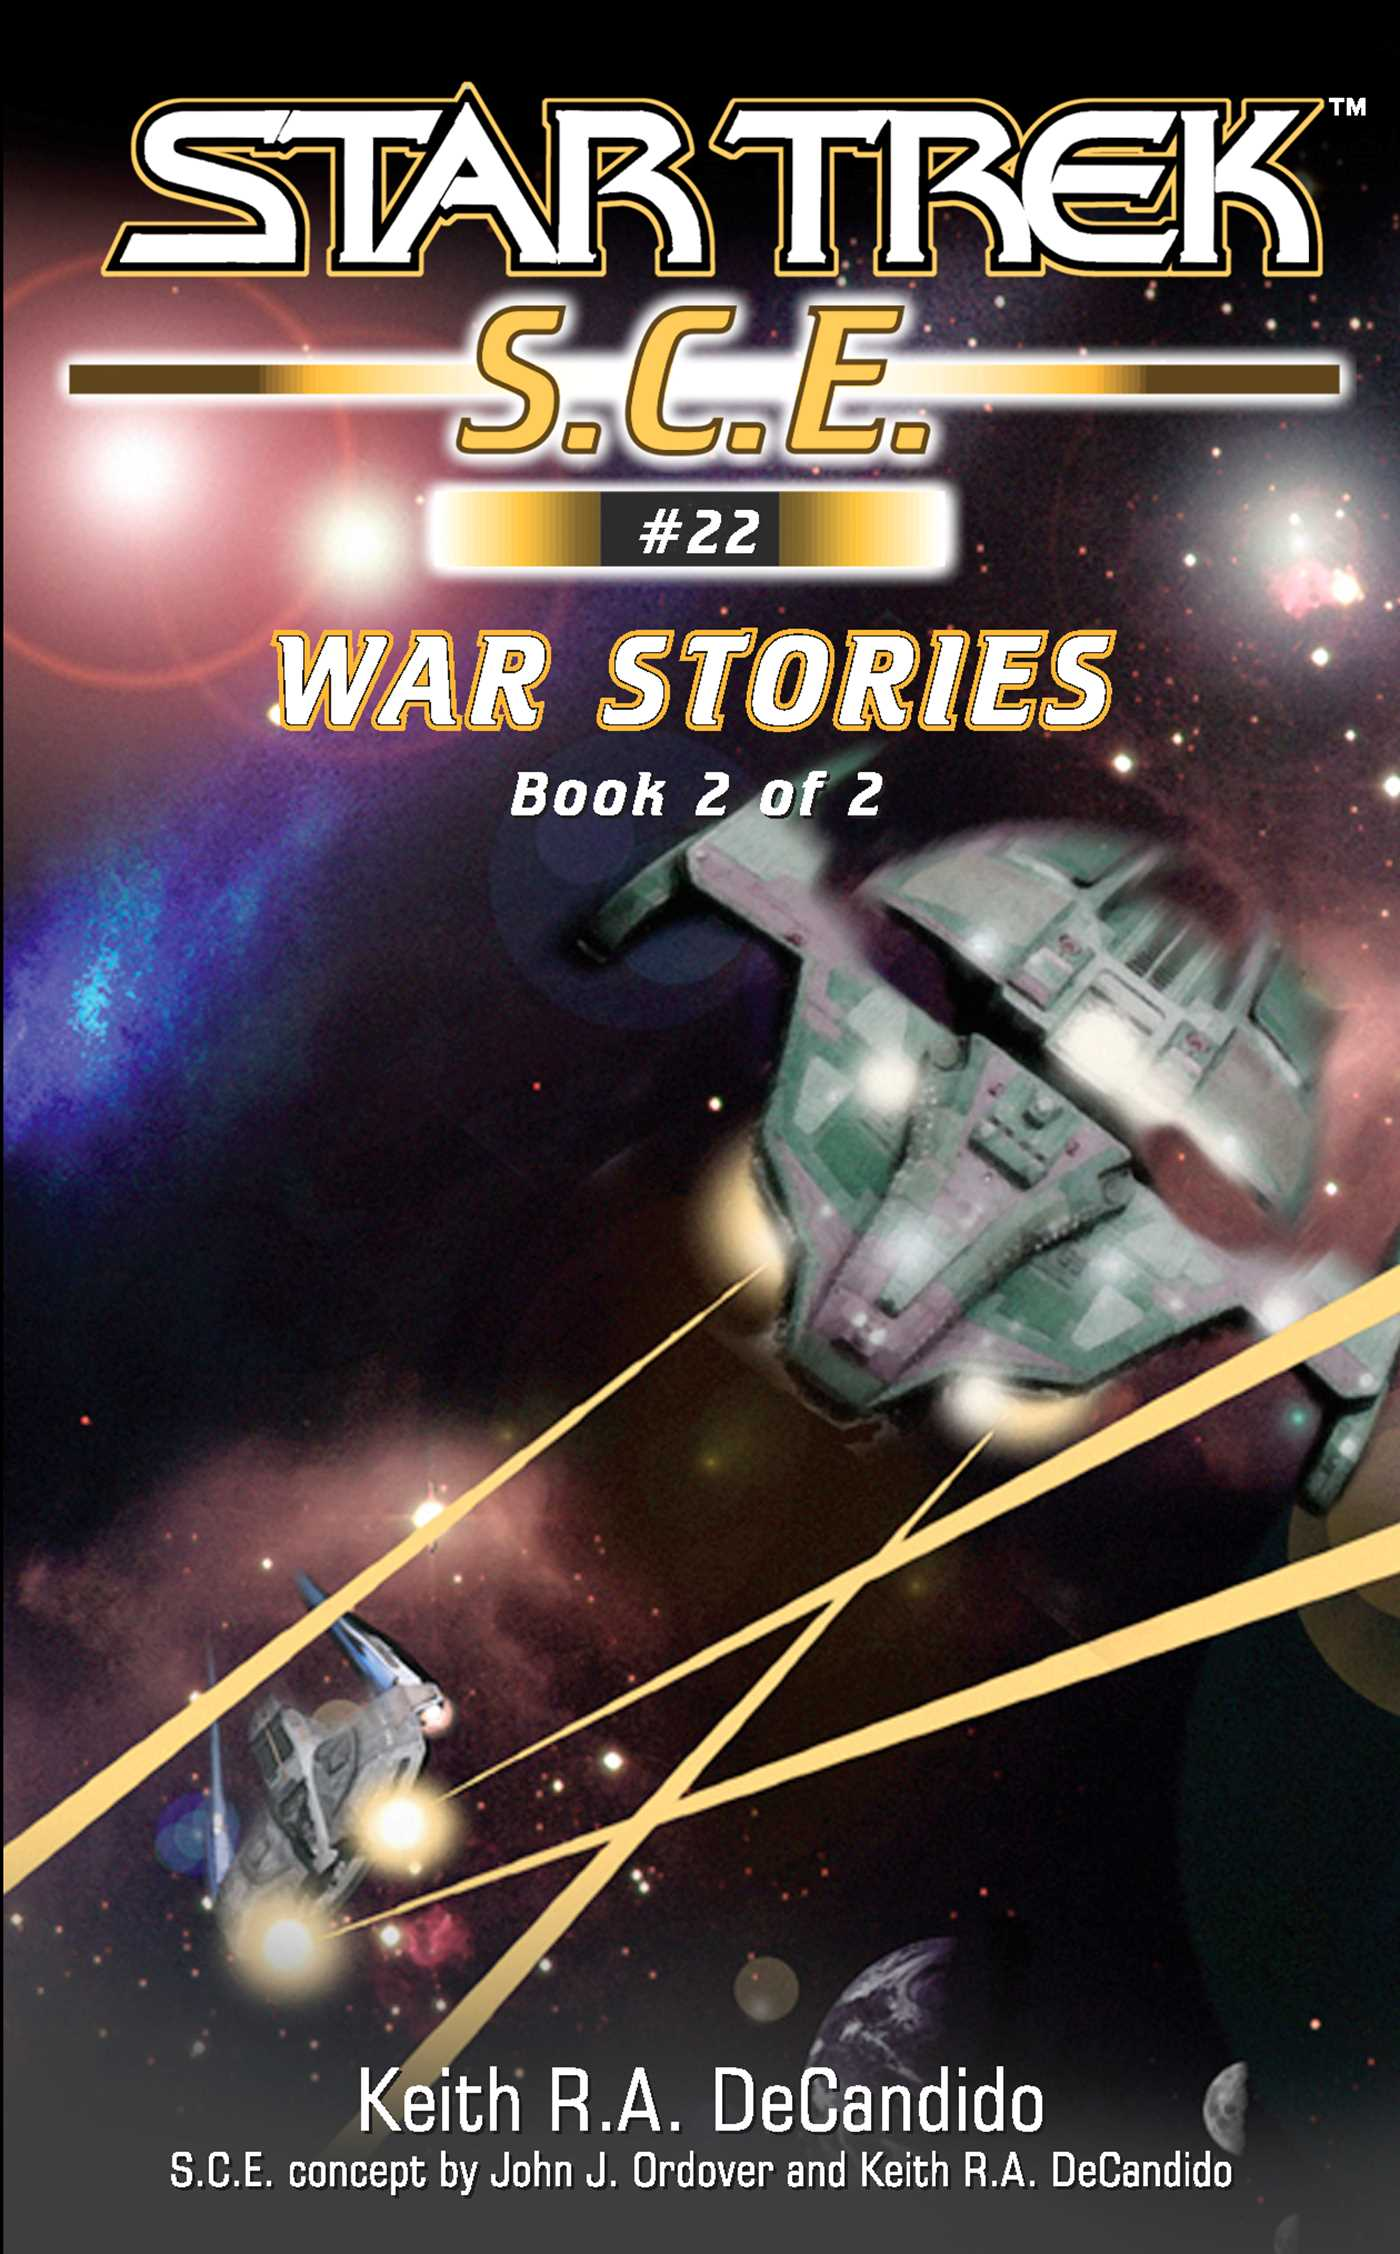 War-stories-book-2-9780743456777_hr